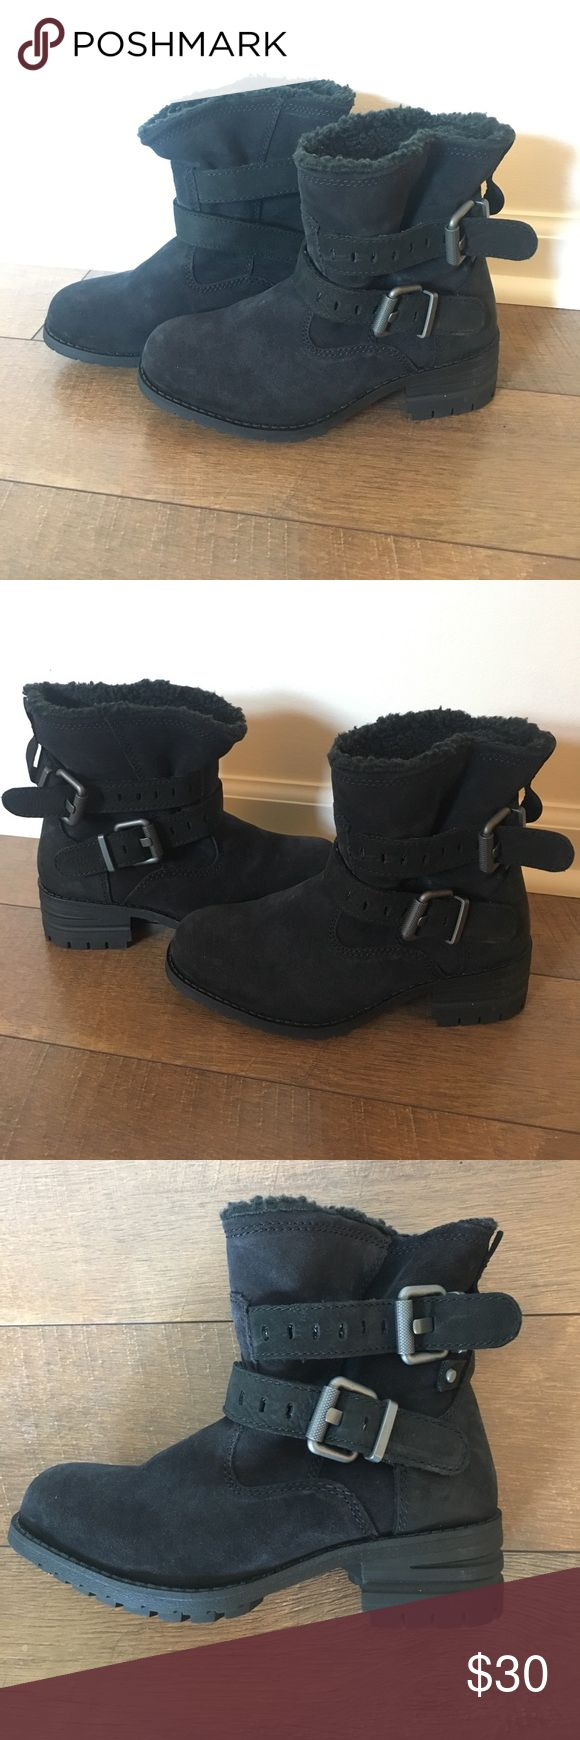 CAT Jory Black Suede Ankle Boots Size 5.5 CAT by Caterpillar Jory Black Suede Ankle Boots w/fuzzy lining; display models, never worn, some light wear from display use. Size 5.5 MSRP $110 Caterpillar Shoes Ankle Boots & Booties